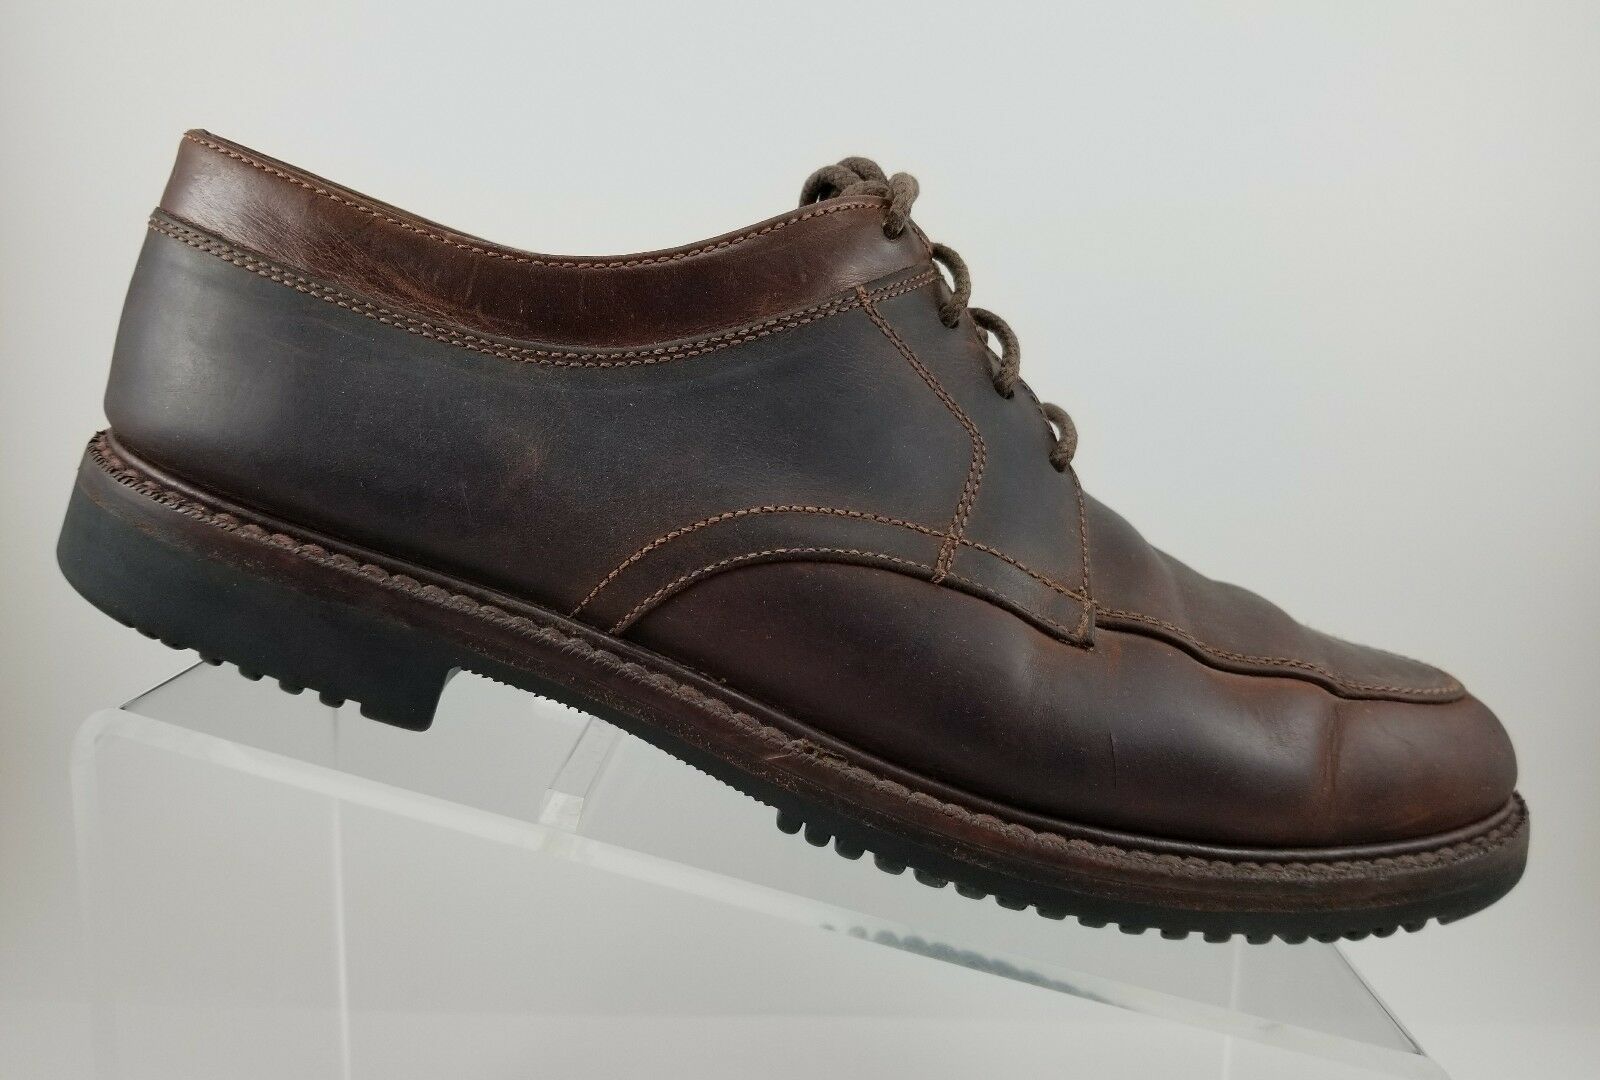 Cole Haan Brown Leather Apron Split Toe Casual Dress Oxfords shoes Mens 10.5M